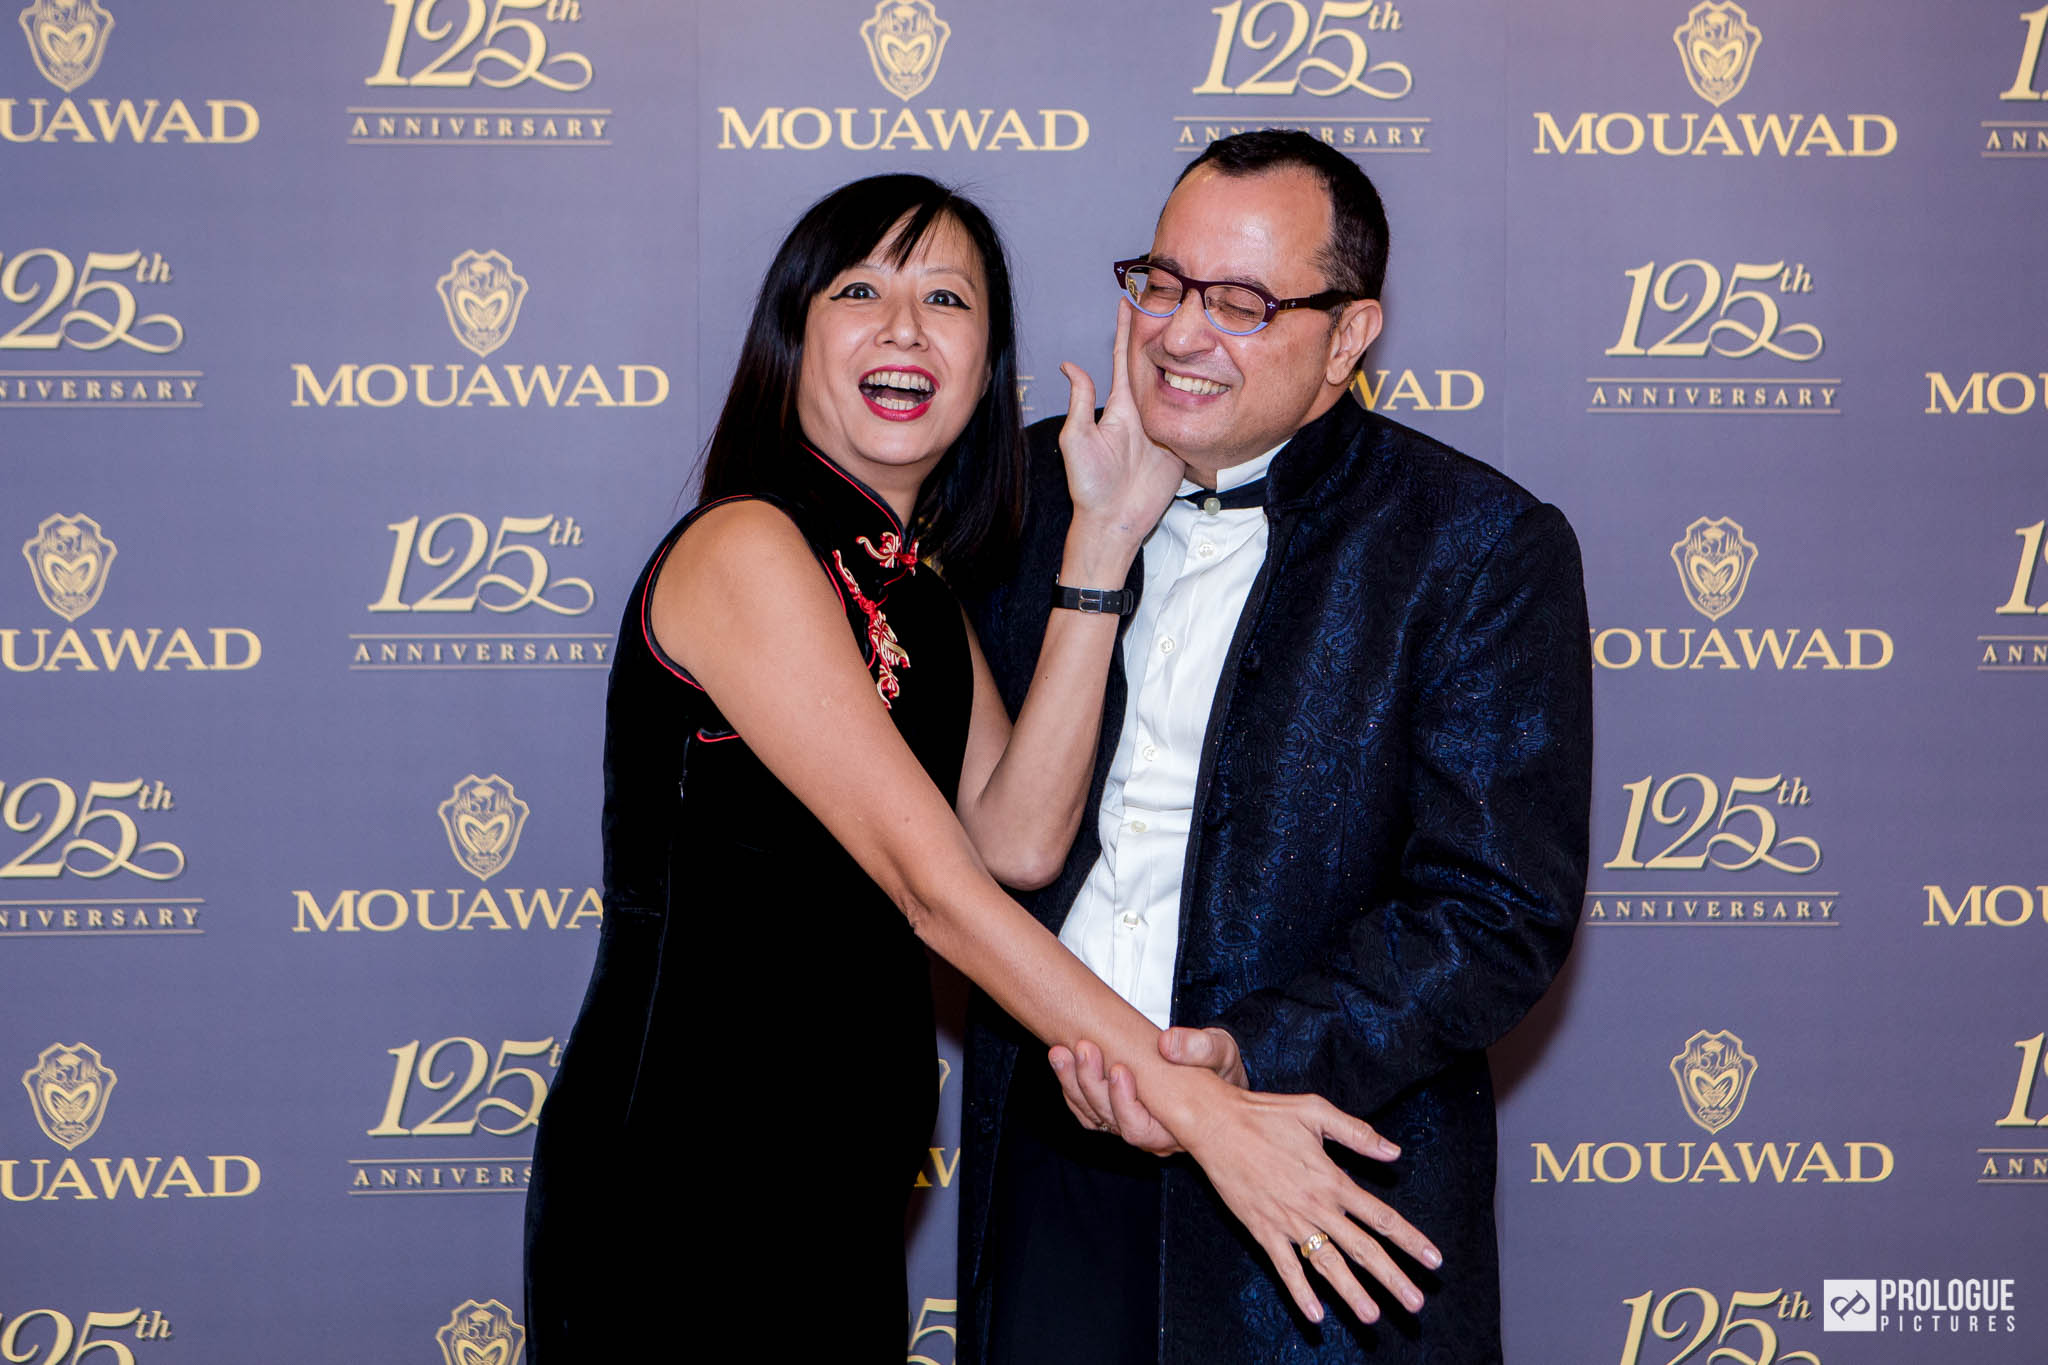 mouawad-125th-anniversary-event-photography-singapore-prologue-pictures-07